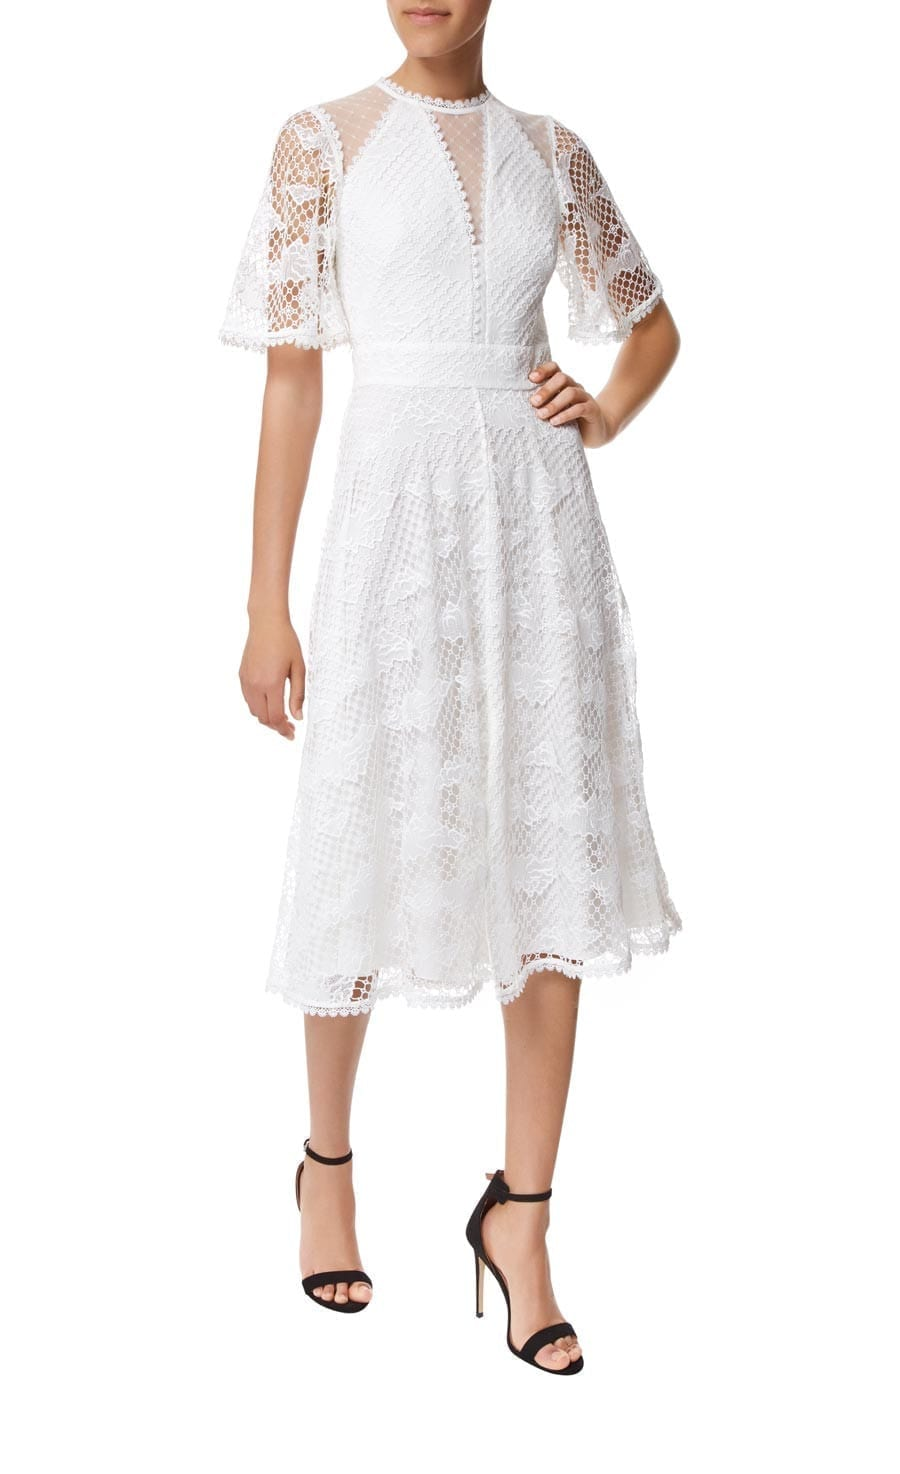 TEMPERLEY LONDON Haze Lace Sleeved White Dress